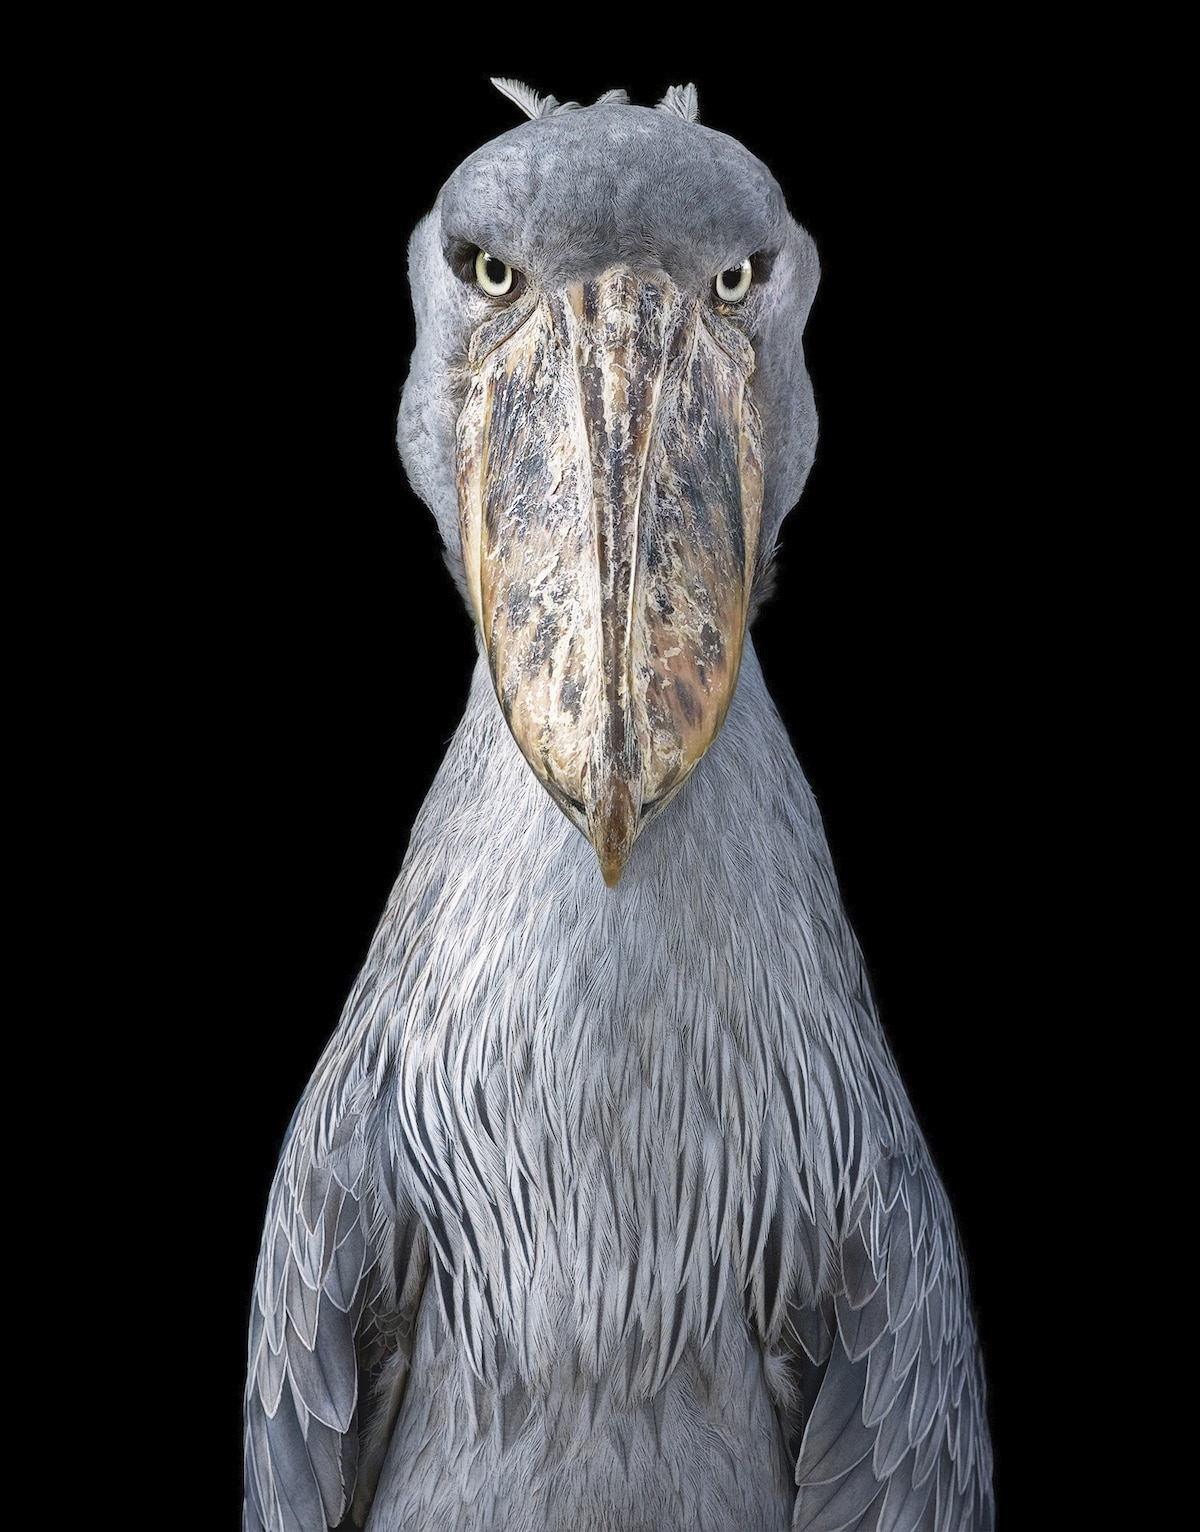 Shoebill by Tim Flach